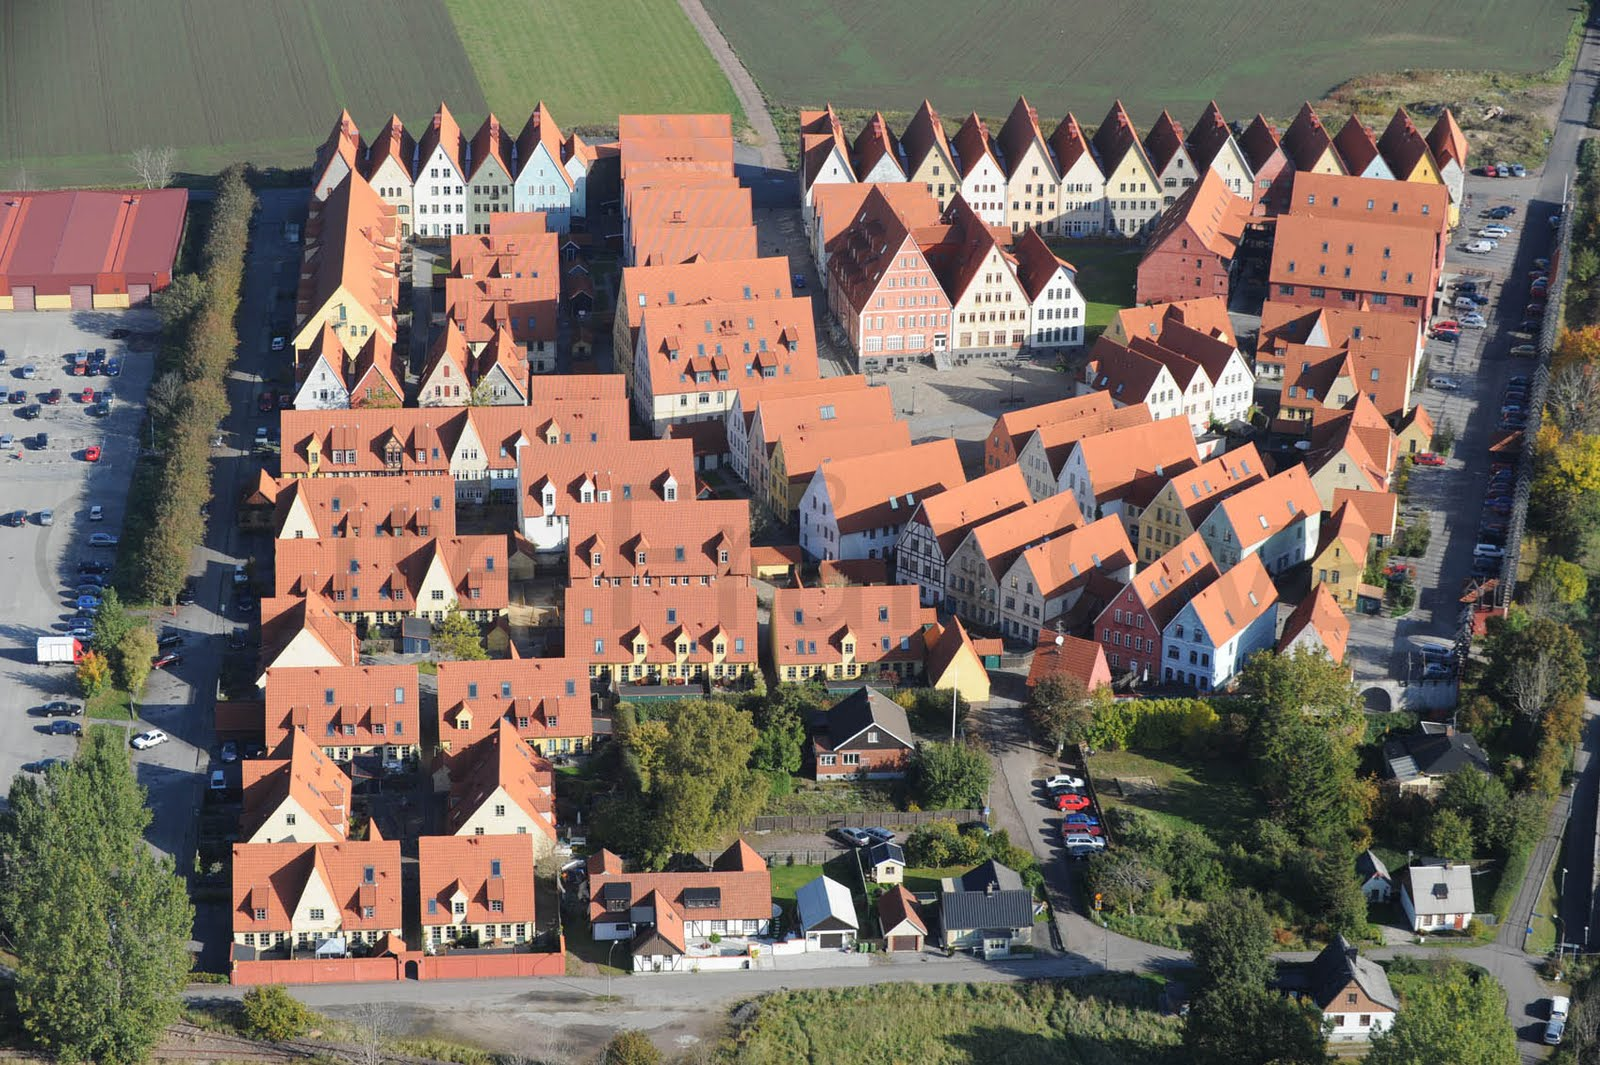 Jakriborg, Sweden was built following this basic pattern in the 1990s and has been growing slowly and organically since then. (Source:  hjarup.nu )